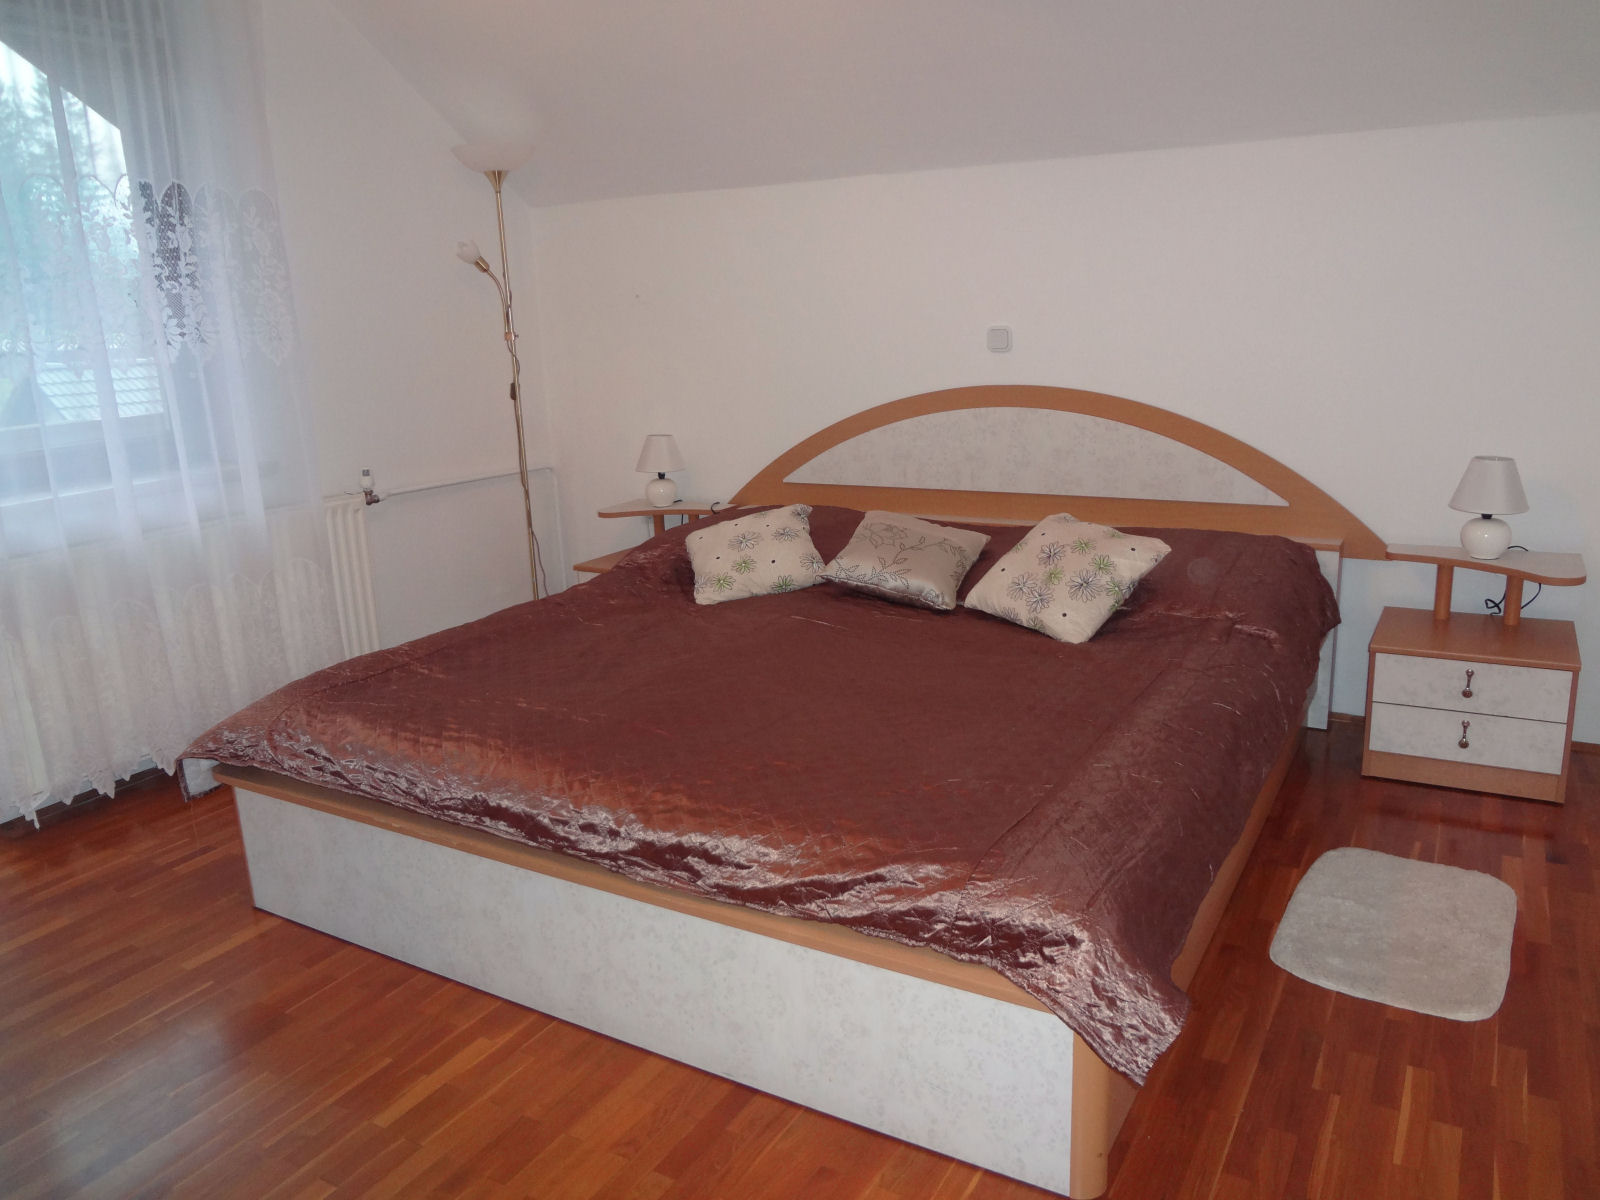 Fine Stay apartment near Bled has large bedroom with king size bed